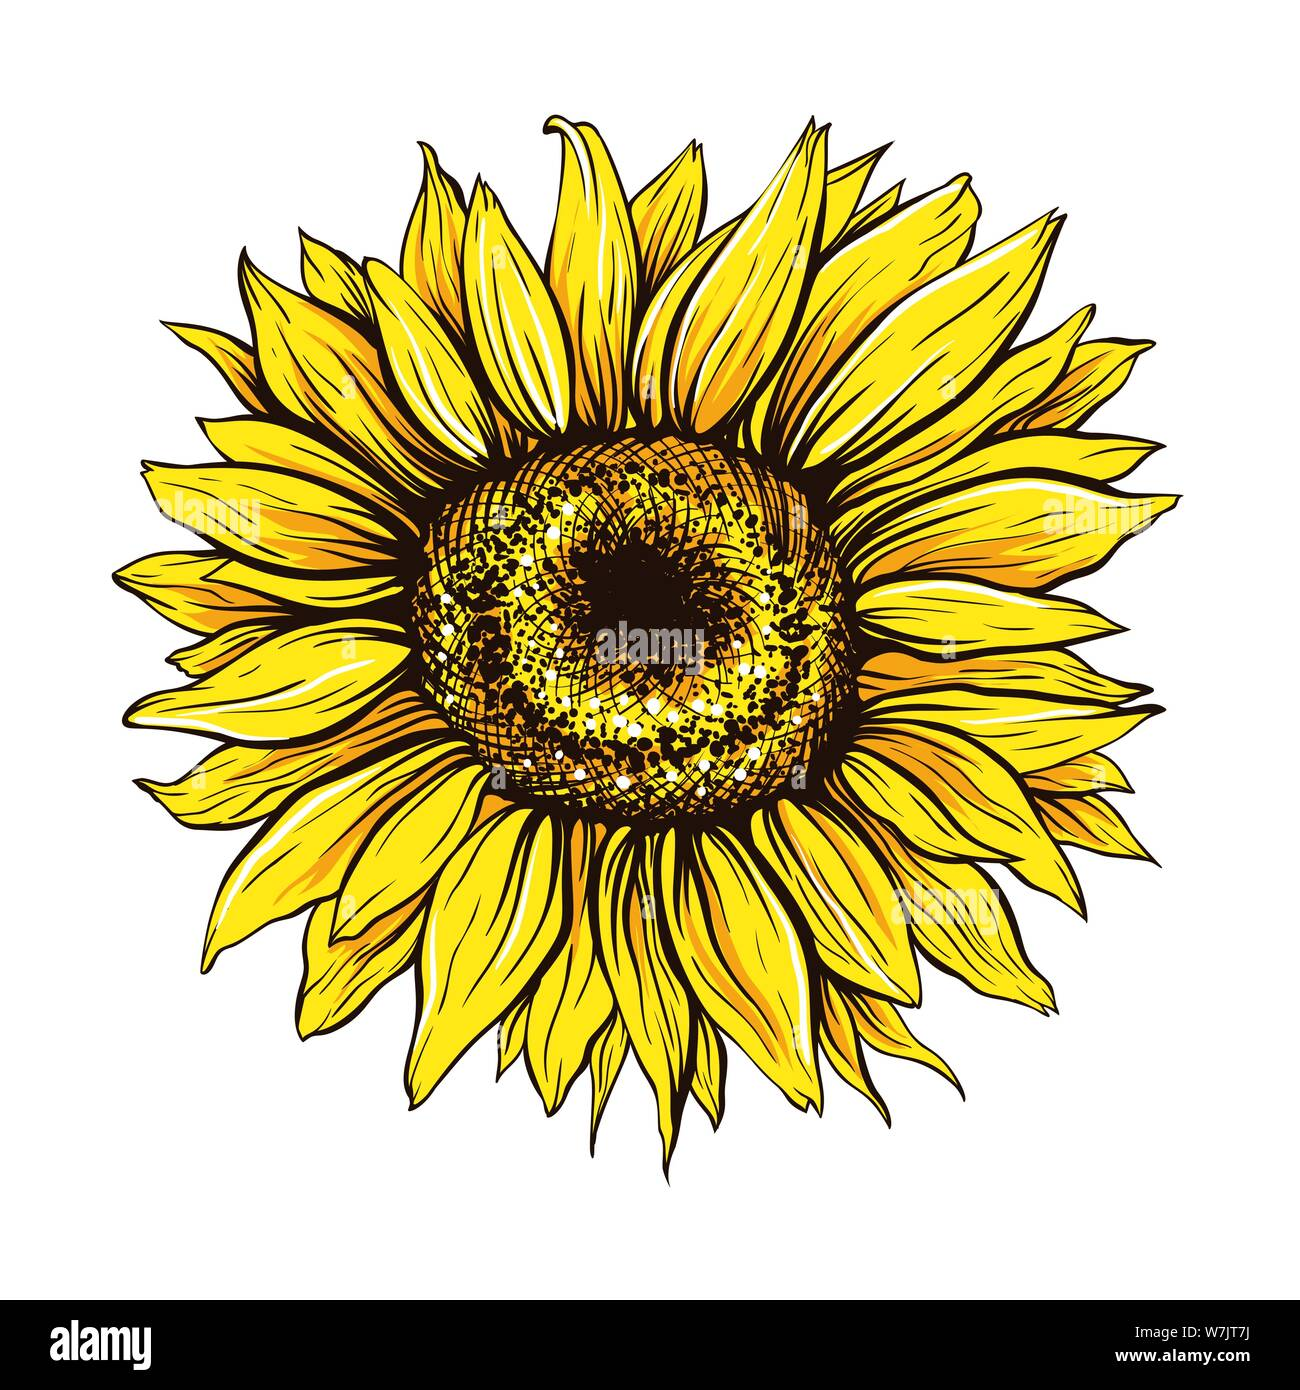 Cartoon Sunflower High Resolution Stock Photography and ...